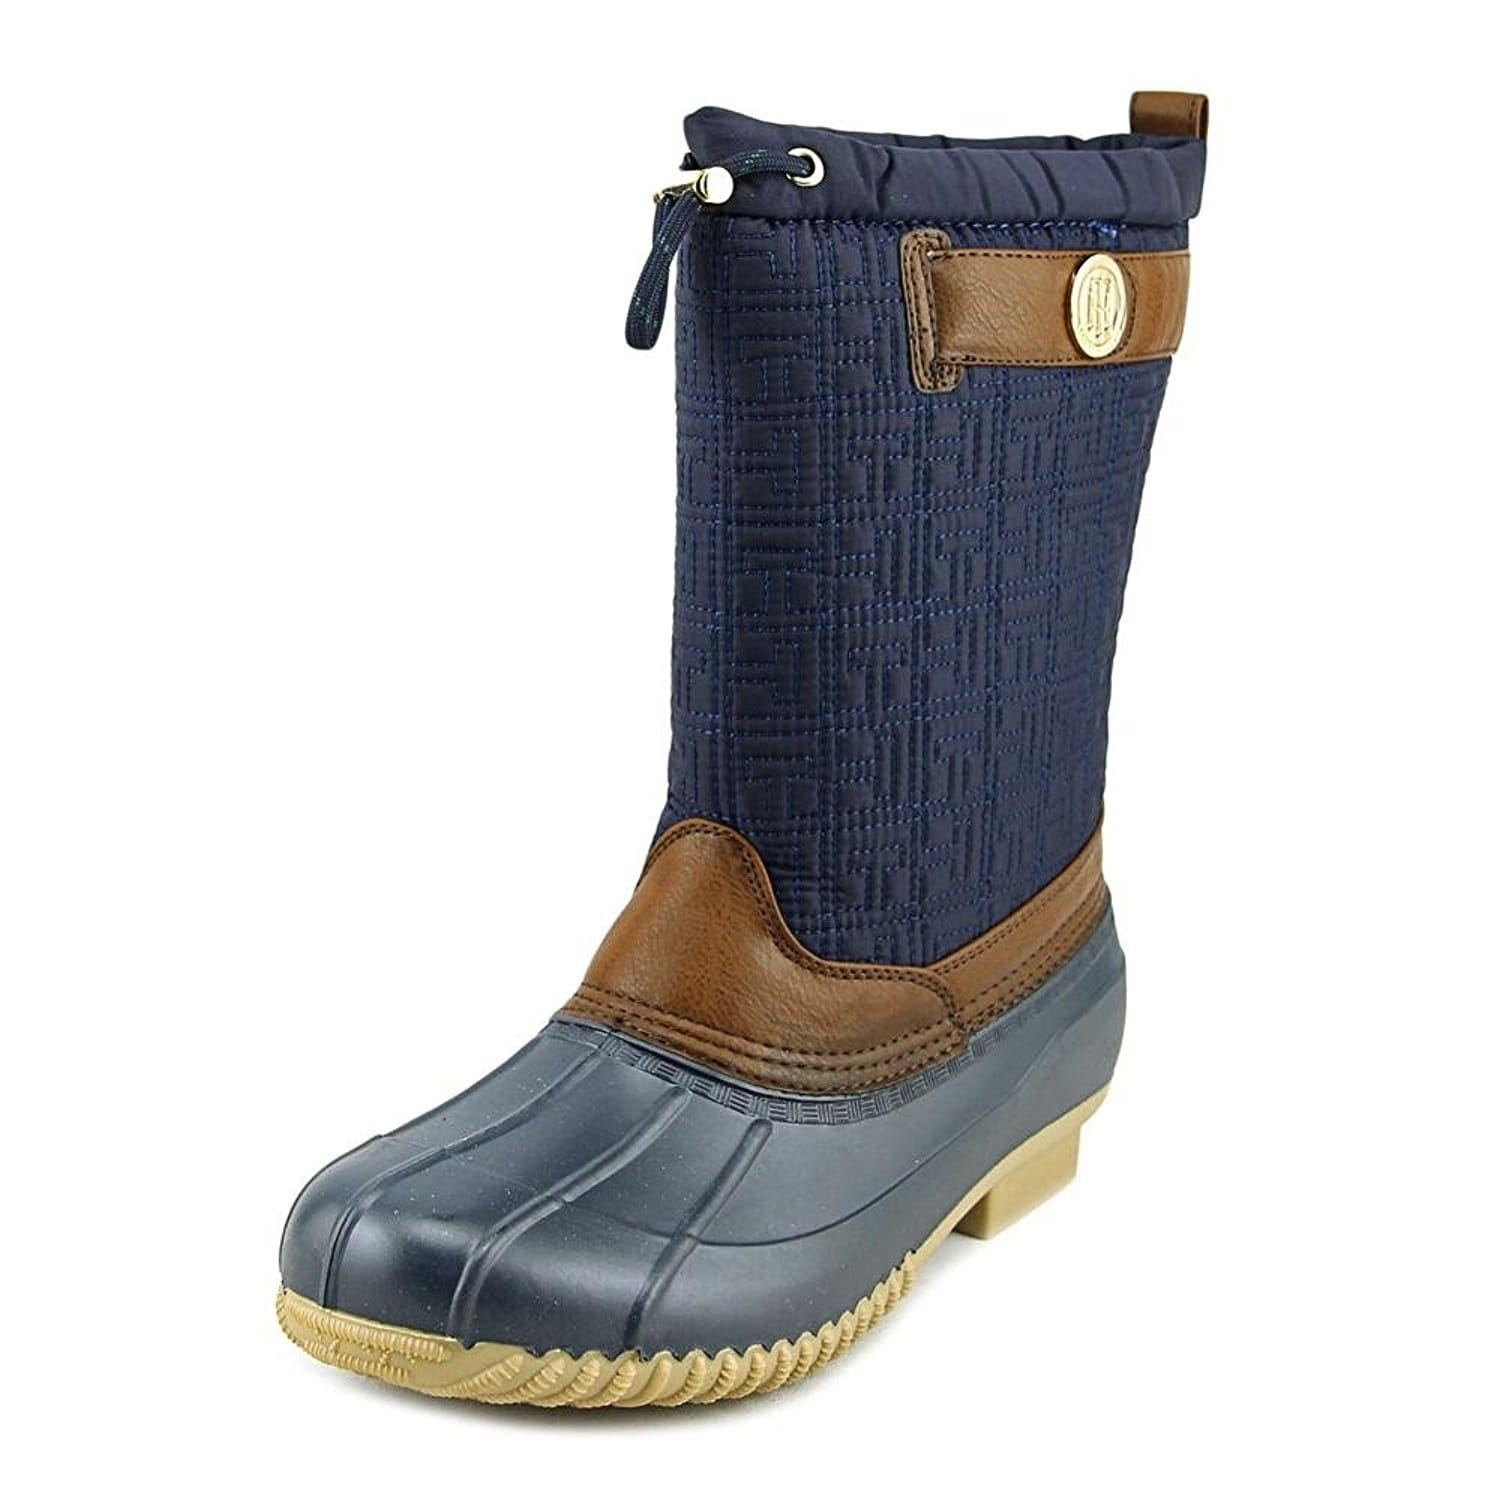 f7eb45209a908 Tommy hilfiger womens romea closed toe mid calf cold weather boots jpg  1500x1500 Boots tommy hilfiger